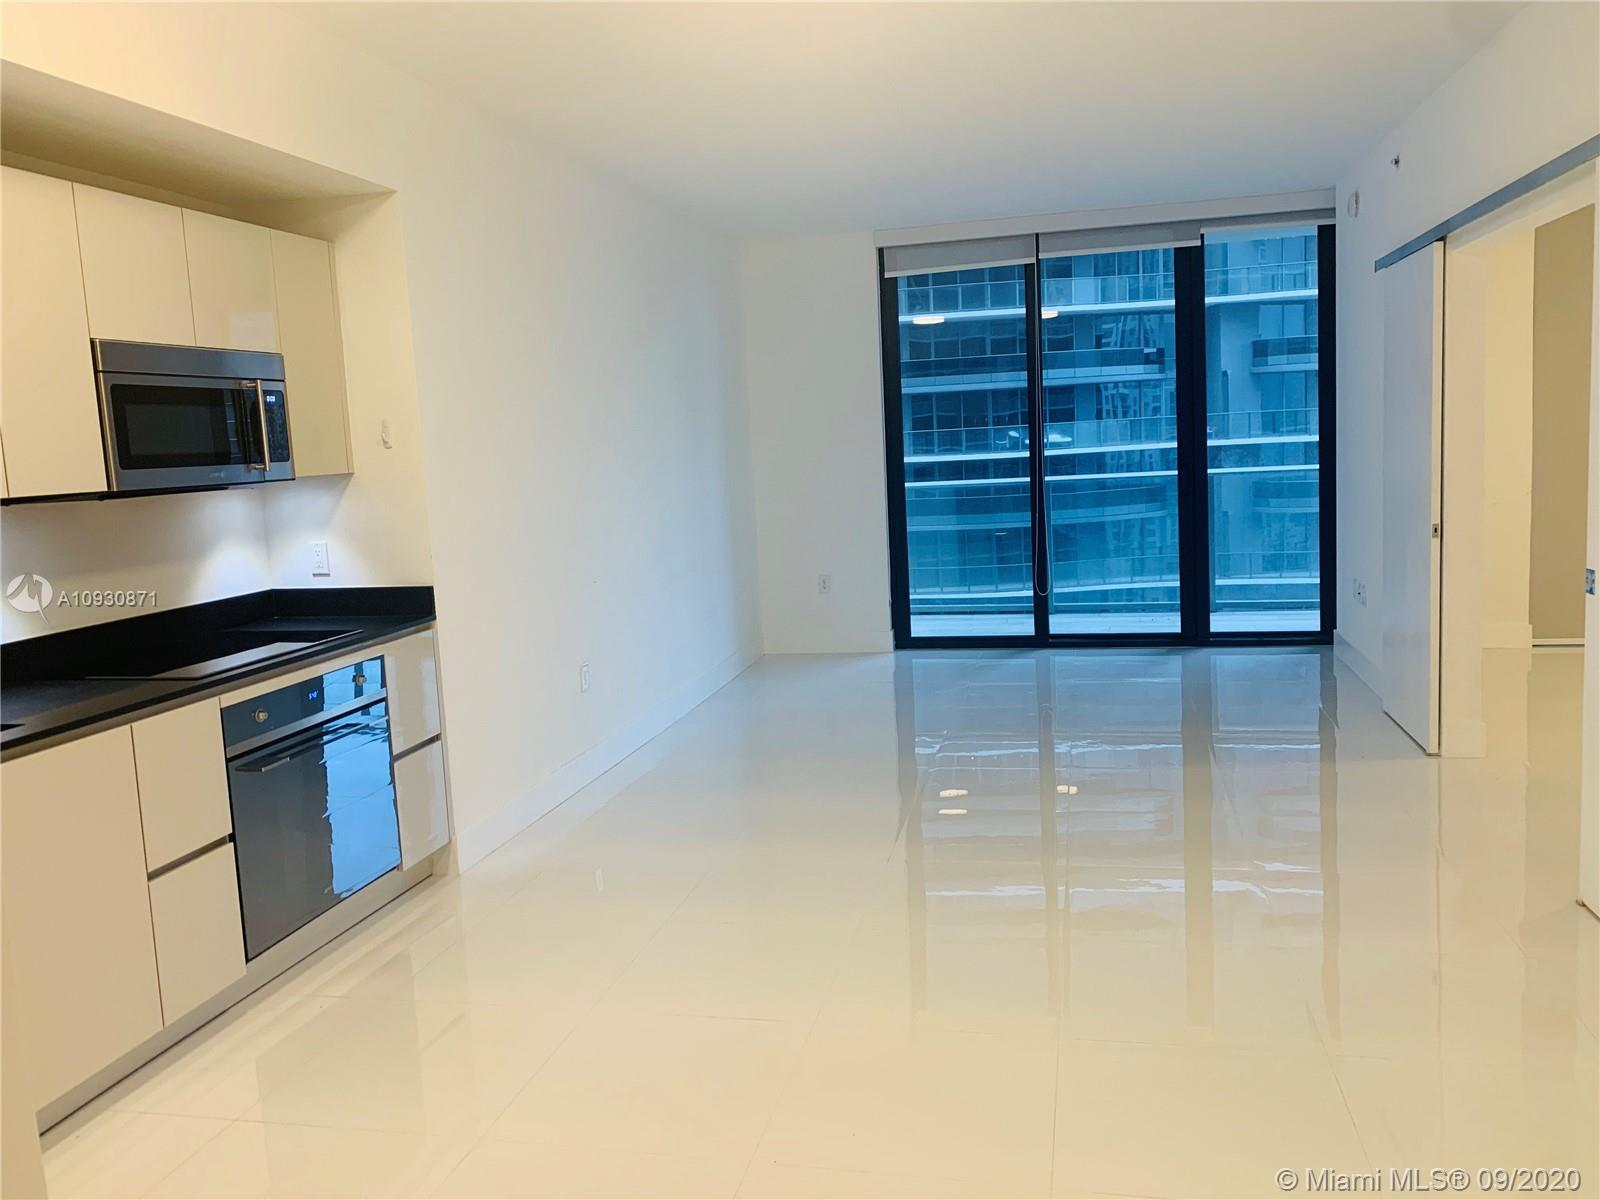 Amazing apartment in a luxury high-rise building that will provide the feeling of nature and a unique alternative to urban living, Location is fantastic, It's in the center of Brickell within distance of everything! Walking distance from Brickell City Centre, shopping's, restaurants, supermarkets and more. Unit features beautiful finishes and Top of the line appliances. Shades black out and a spacious balcony provide a breathtaking view to the city. 5 stars amenities, such as business center, , spa, roof top pools, activities center for kids and adults, massage rooms, Co-ed Hammam, skyline running track, restaurant and outdoor movie theater on the roof, Basketball Court, Racquetball Court. The unit is turnkey, A MUST SEE!